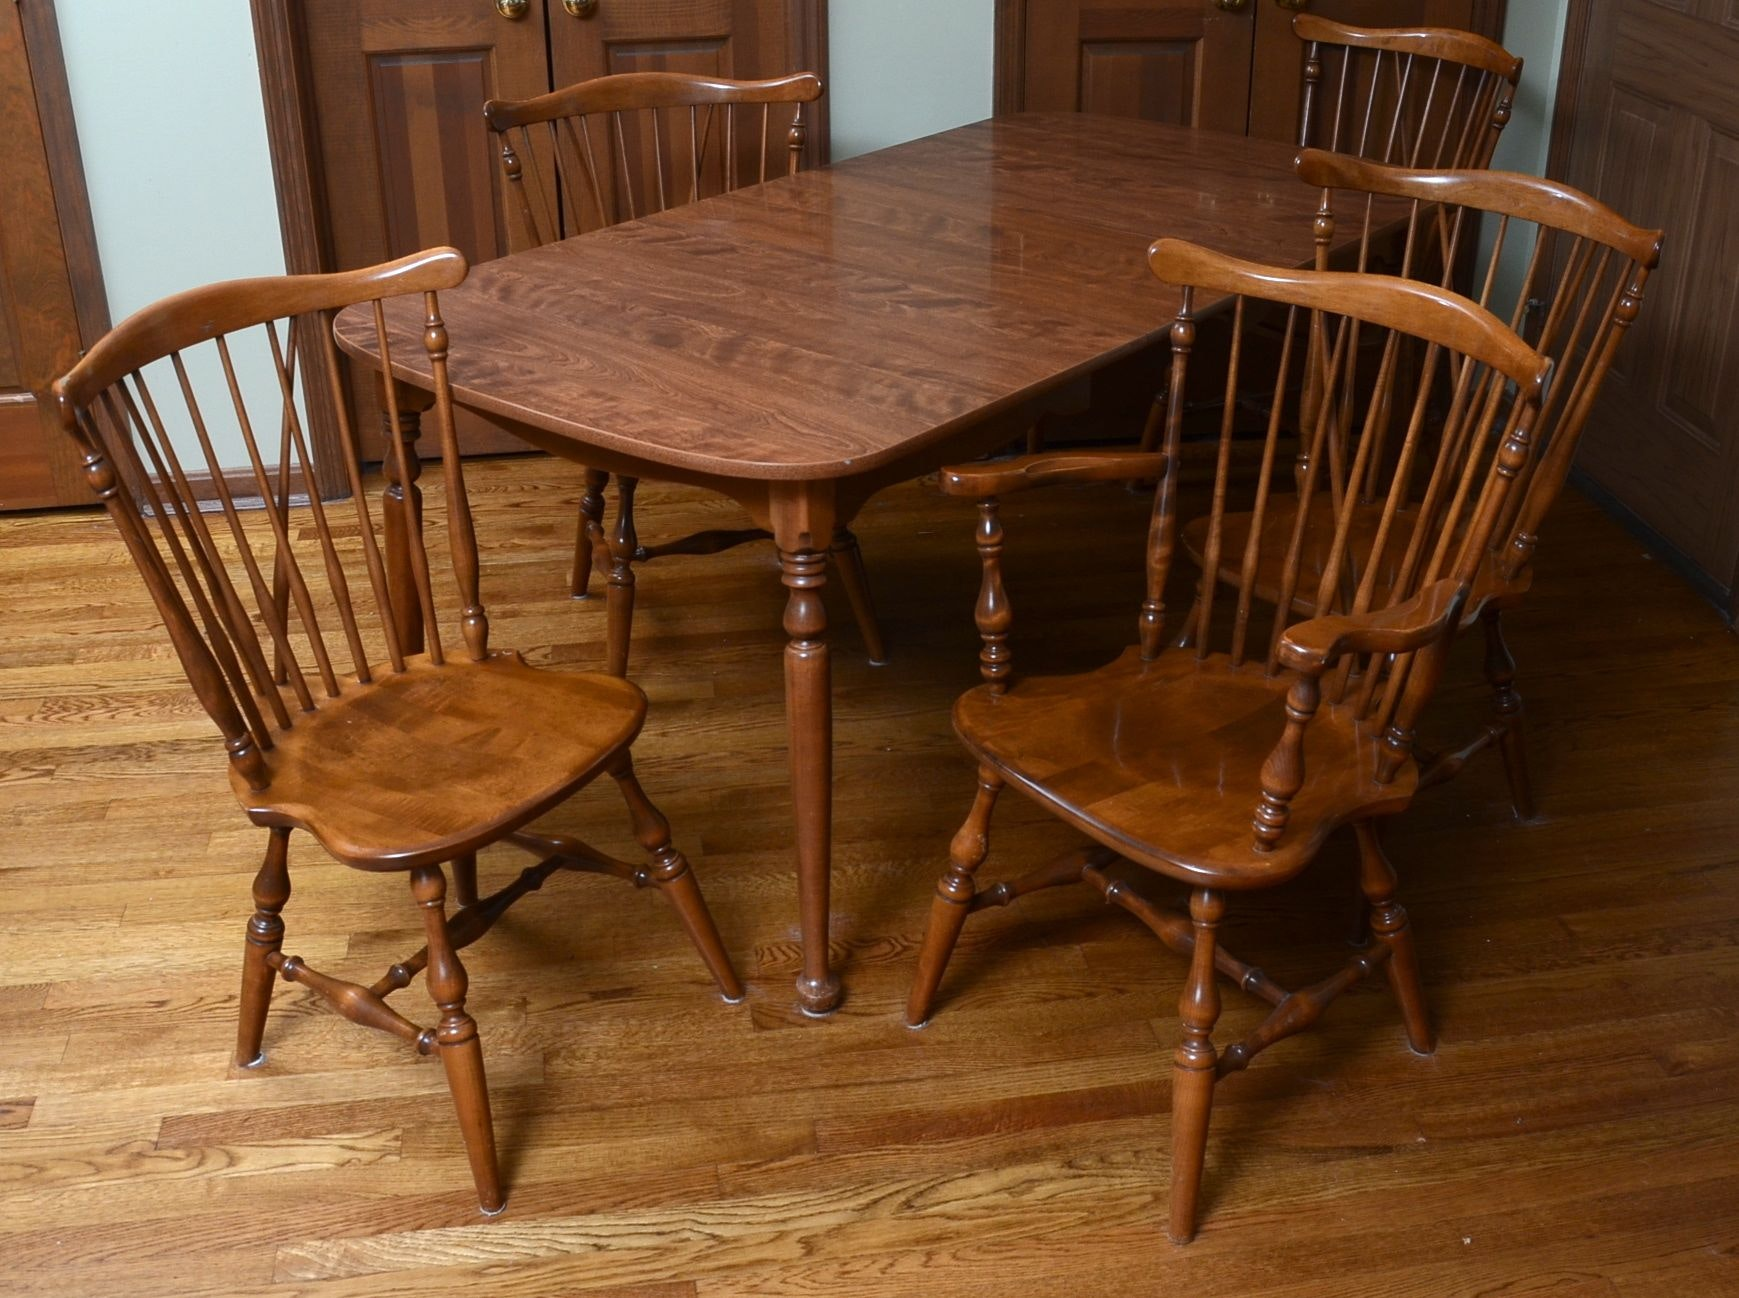 Ethan Allen Dining Table and Chairs EBTH : DSC9328jpgixlibrb 11 from www.ebth.com size 880 x 906 jpeg 169kB